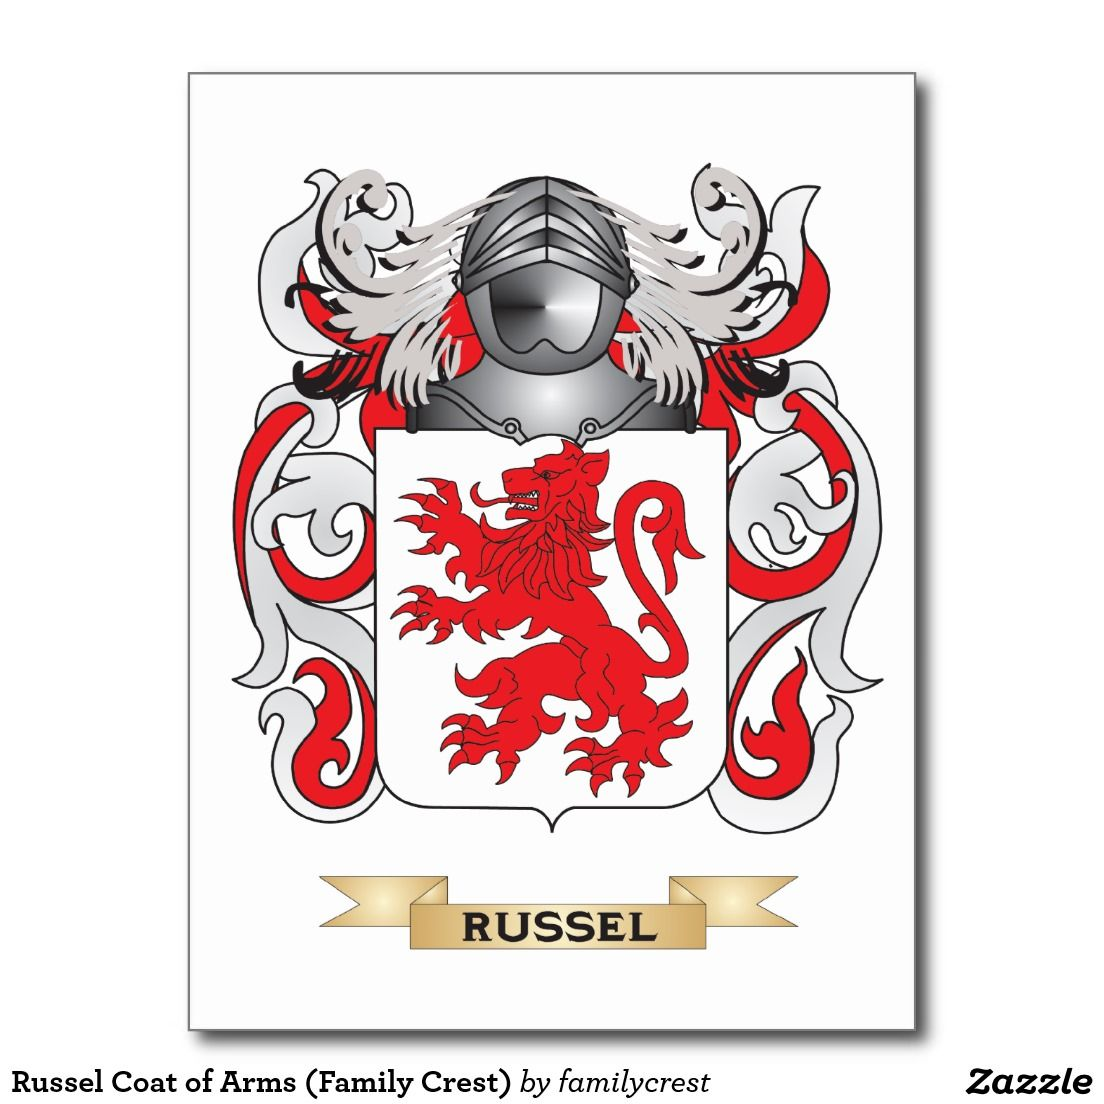 Russel coat of arms family crest postcard gift ideas pinterest russel coat of arms family crest postcard buycottarizona